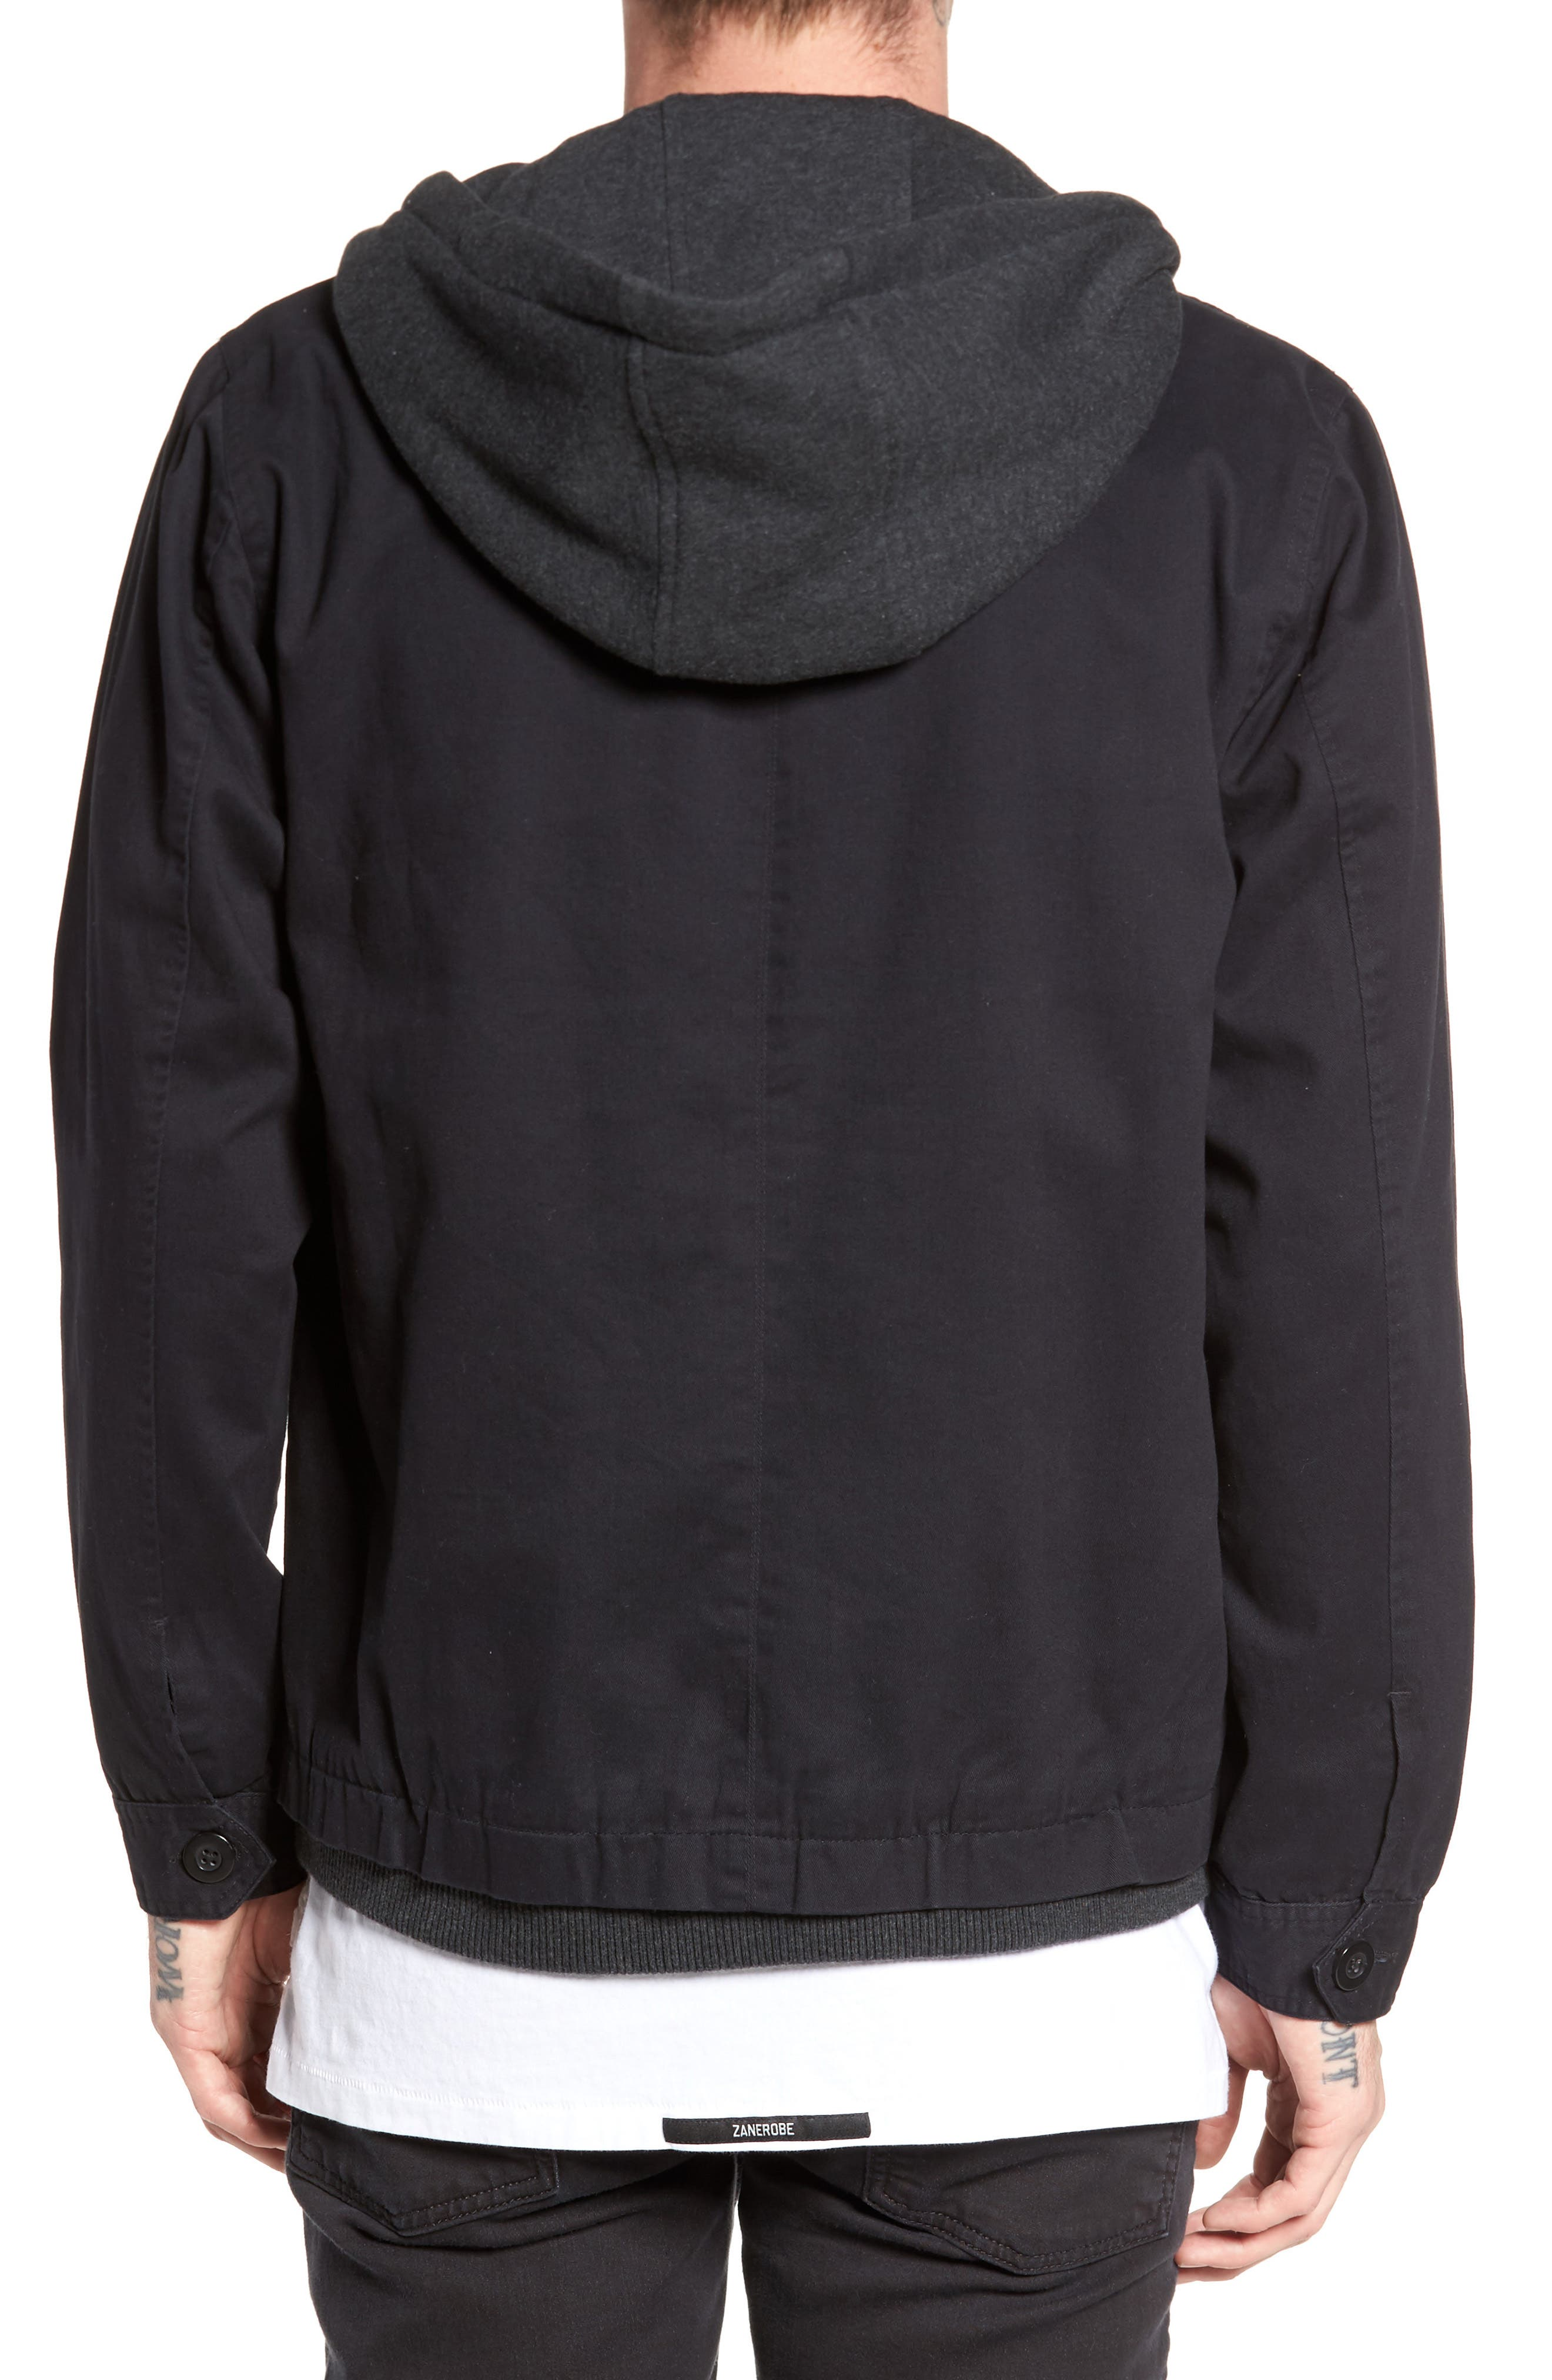 Droogs Field Jacket with Detachable Hood,                             Alternate thumbnail 2, color,                             Grey/ Heather Grey